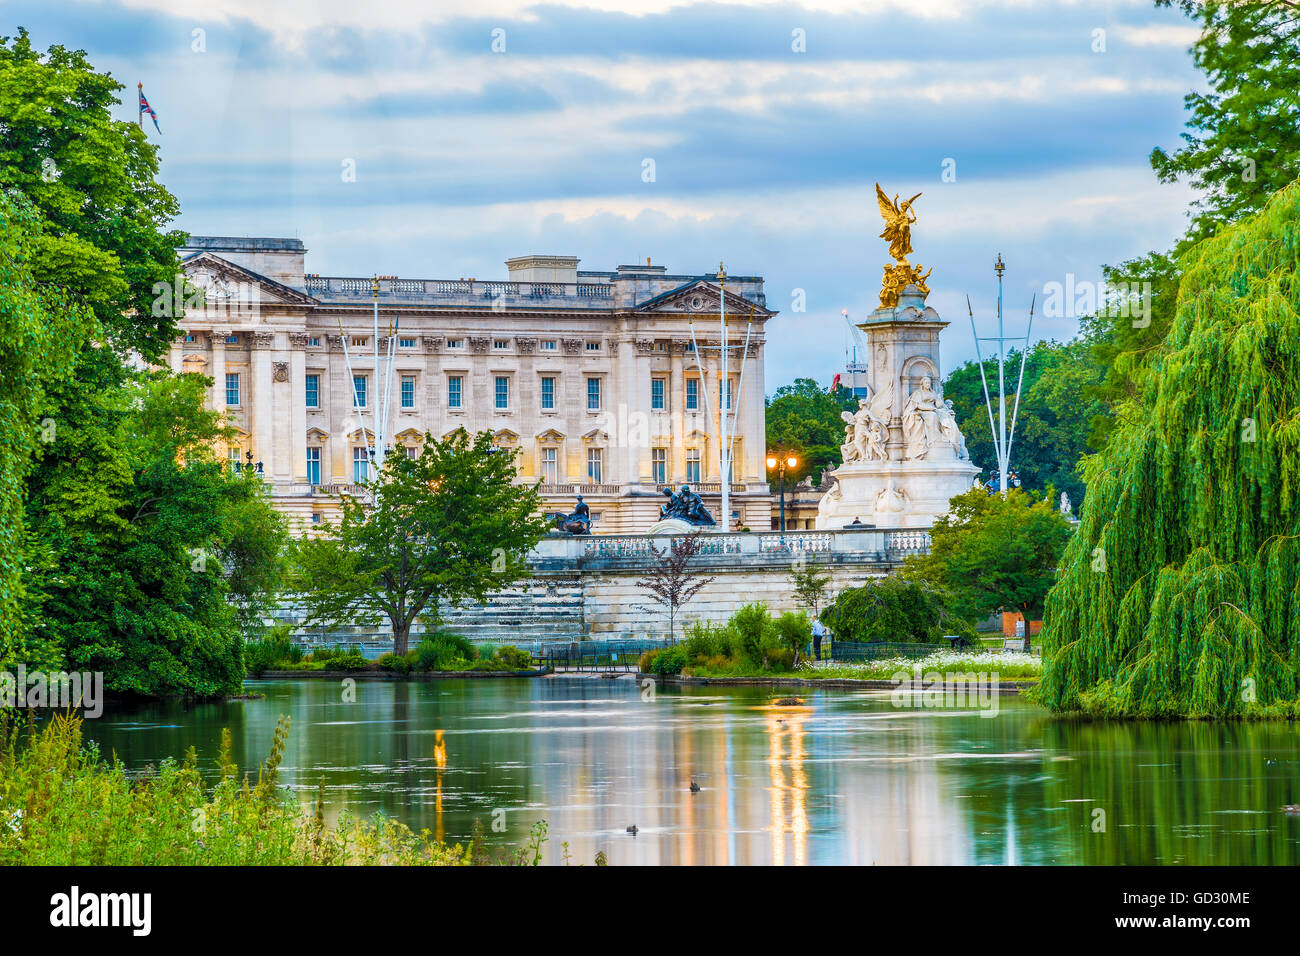 Buckingham Palace, St. James Park in London zu sehen Stockbild